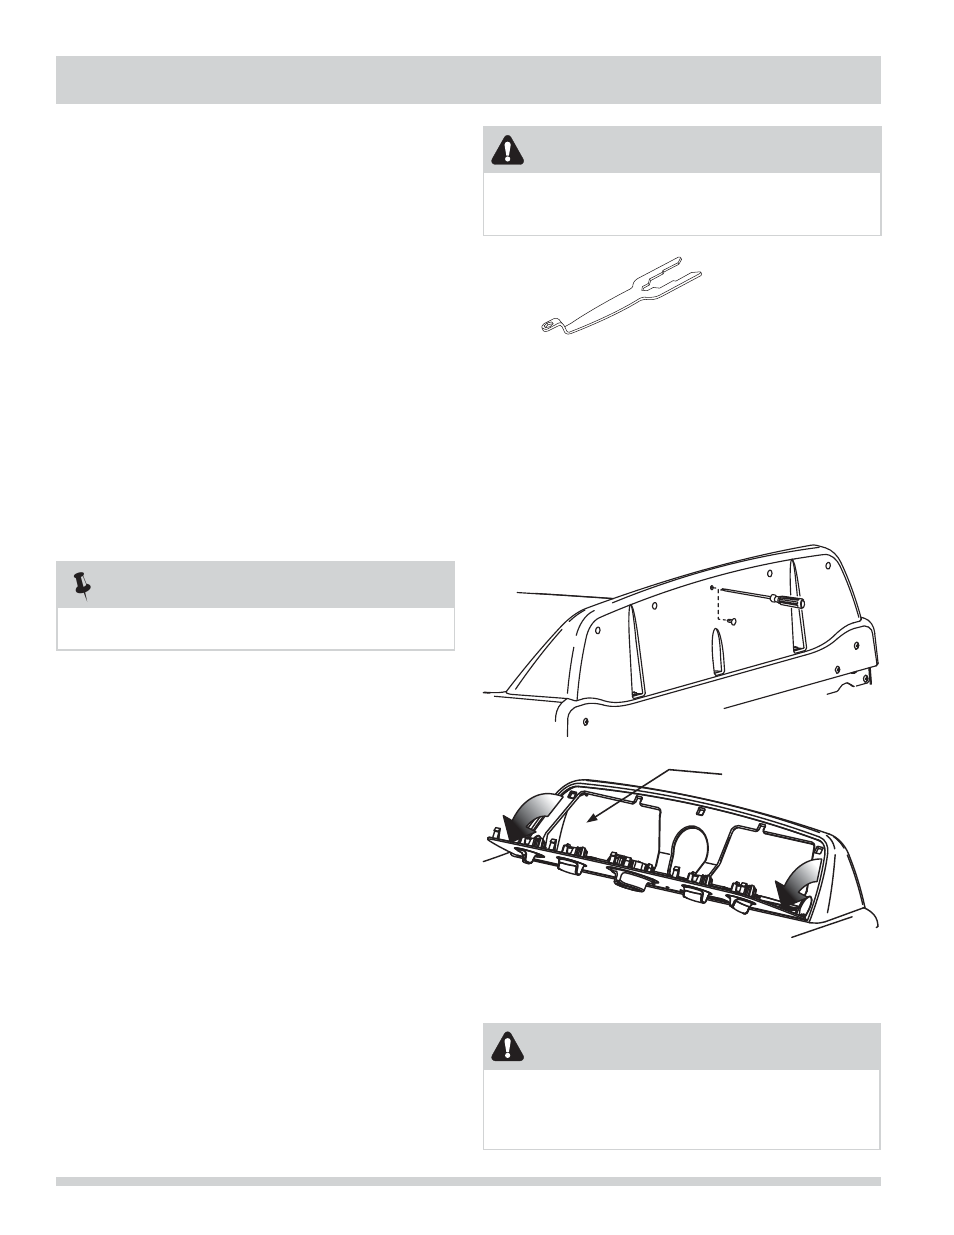 Accessories Caution Warning Frigidaire Affinity Washer 3 Hole Plug Wiring Diagram Fahe1011mw User Manual Page 10 32